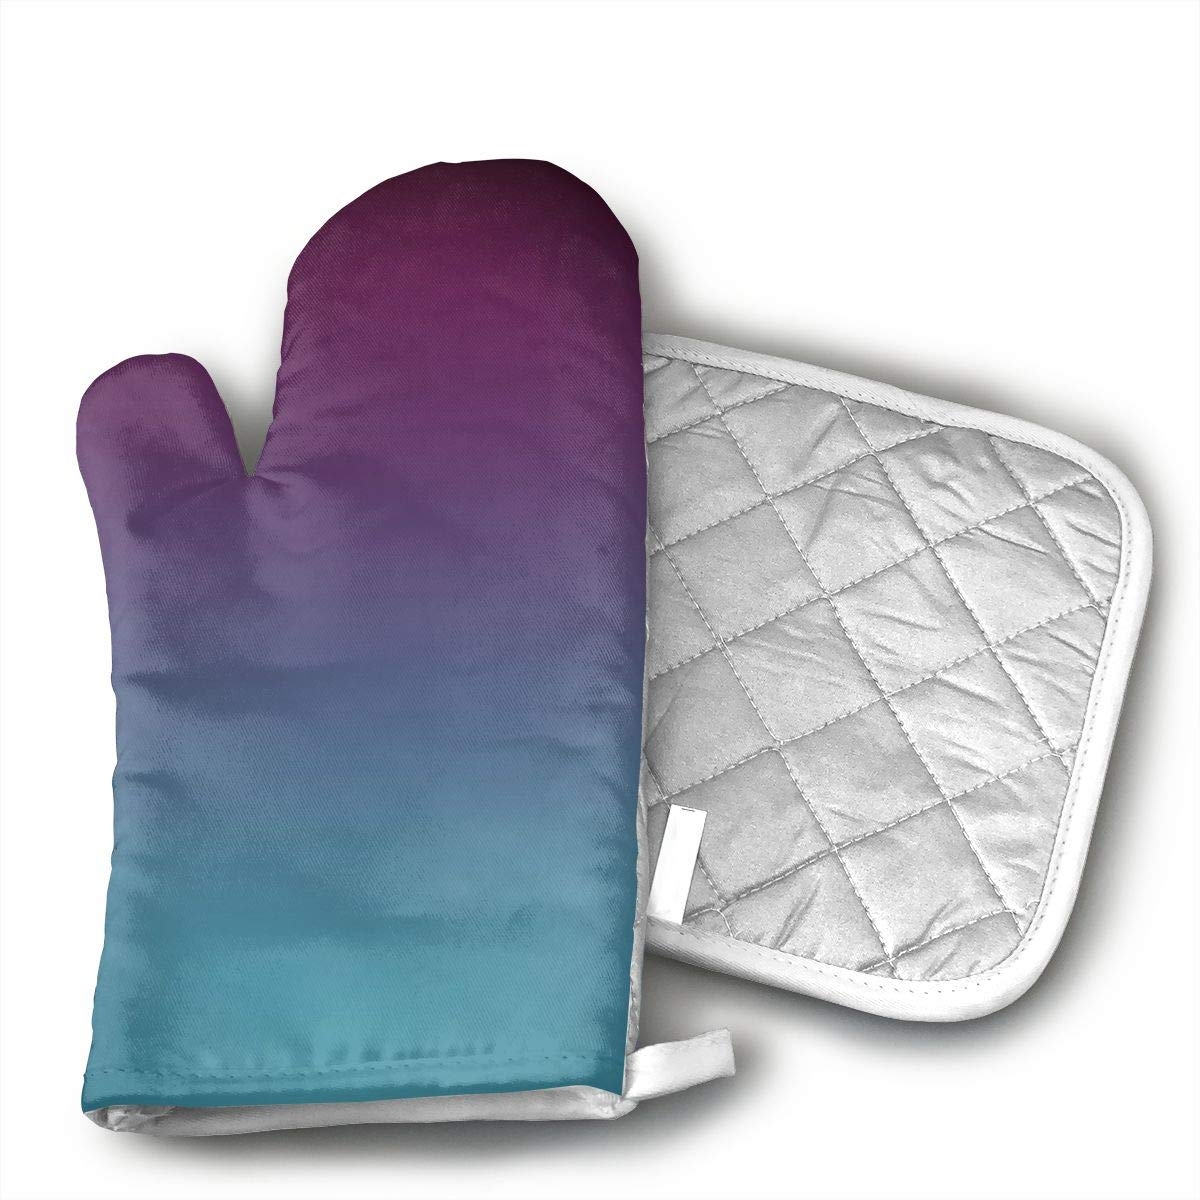 Mulberry Purple Blue Teal Fade Oven Mitts and Pot Holders Set with Polyester Cotton Non-Slip Grip, Heat Resistant, Oven Gloves for BBQ Cooking Baking, Grilling